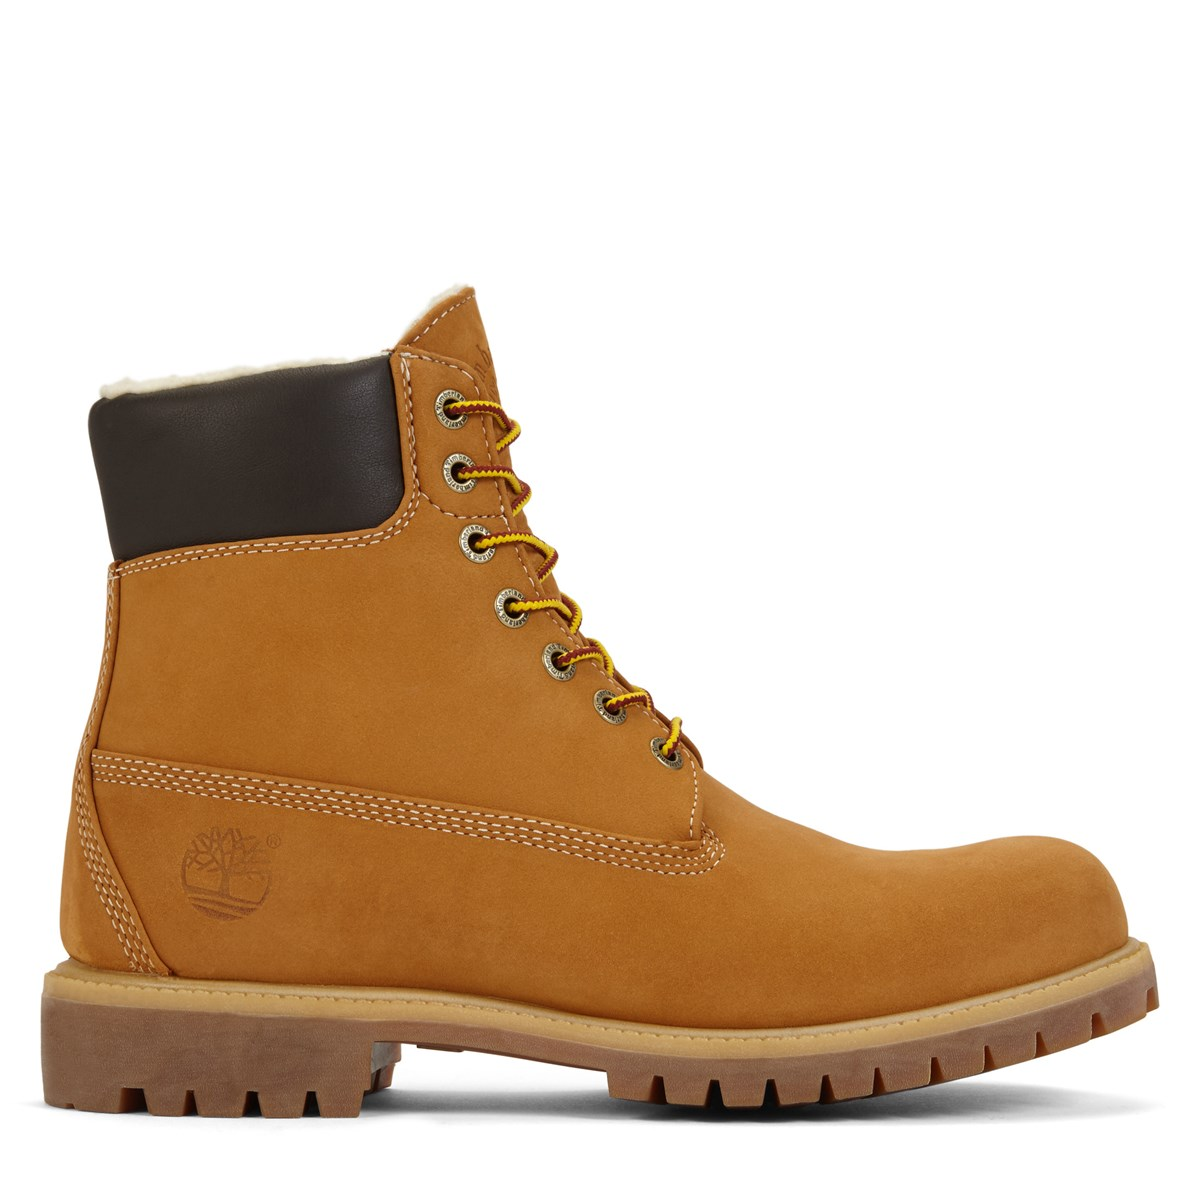 Men's Heritage 6 Warm Lined Boots in Wheat